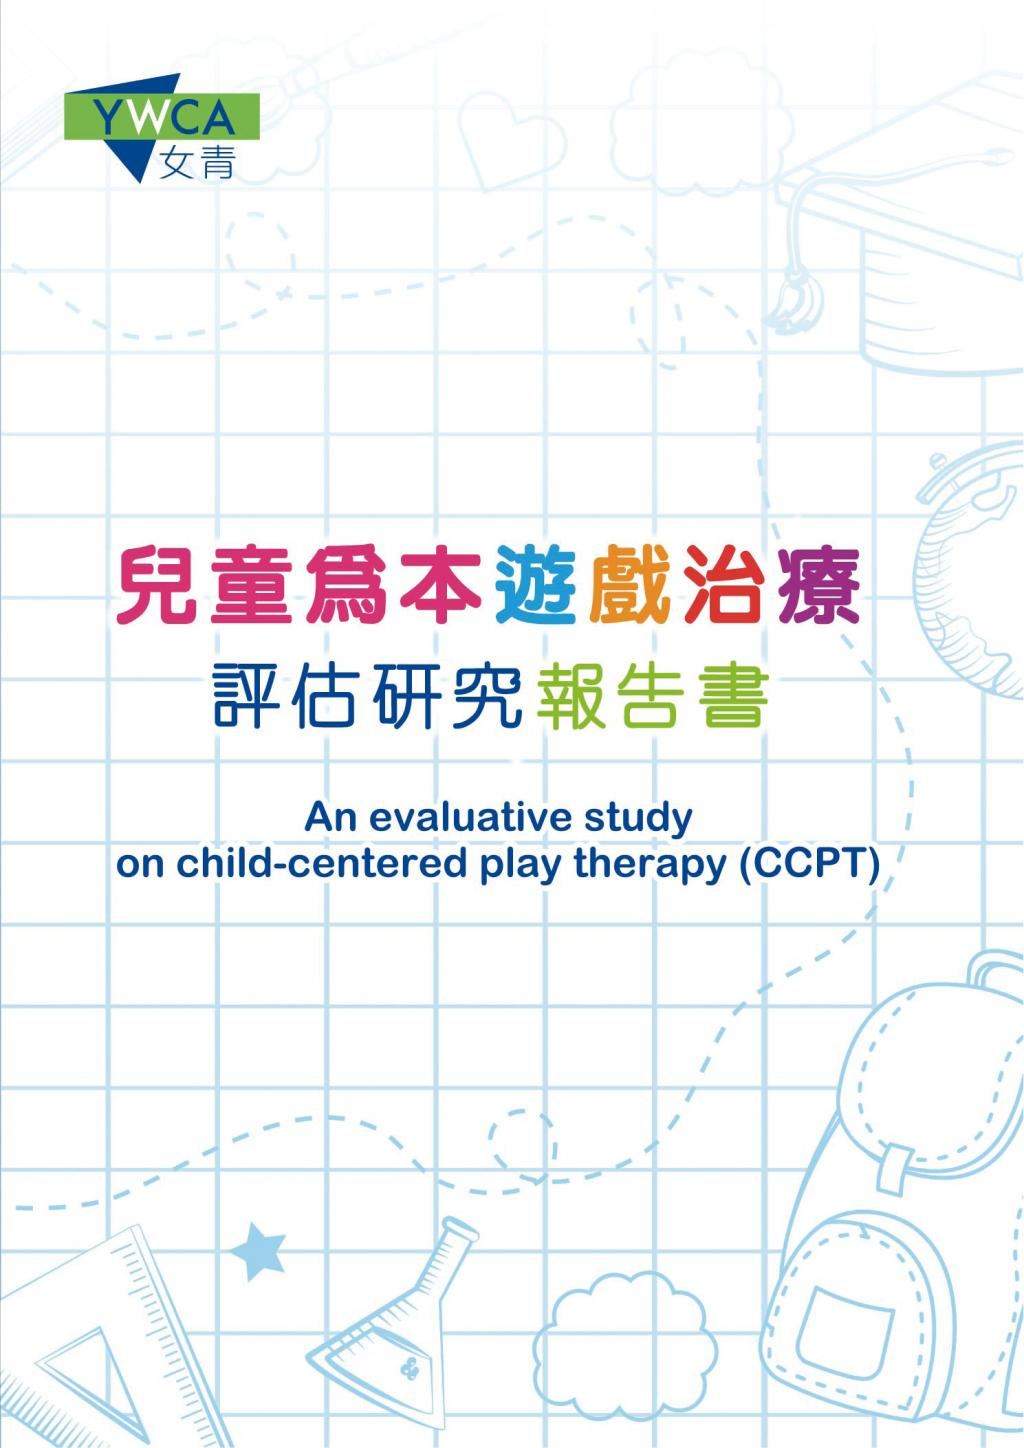 An evaluative study on child-centered play therapy (CCPT)